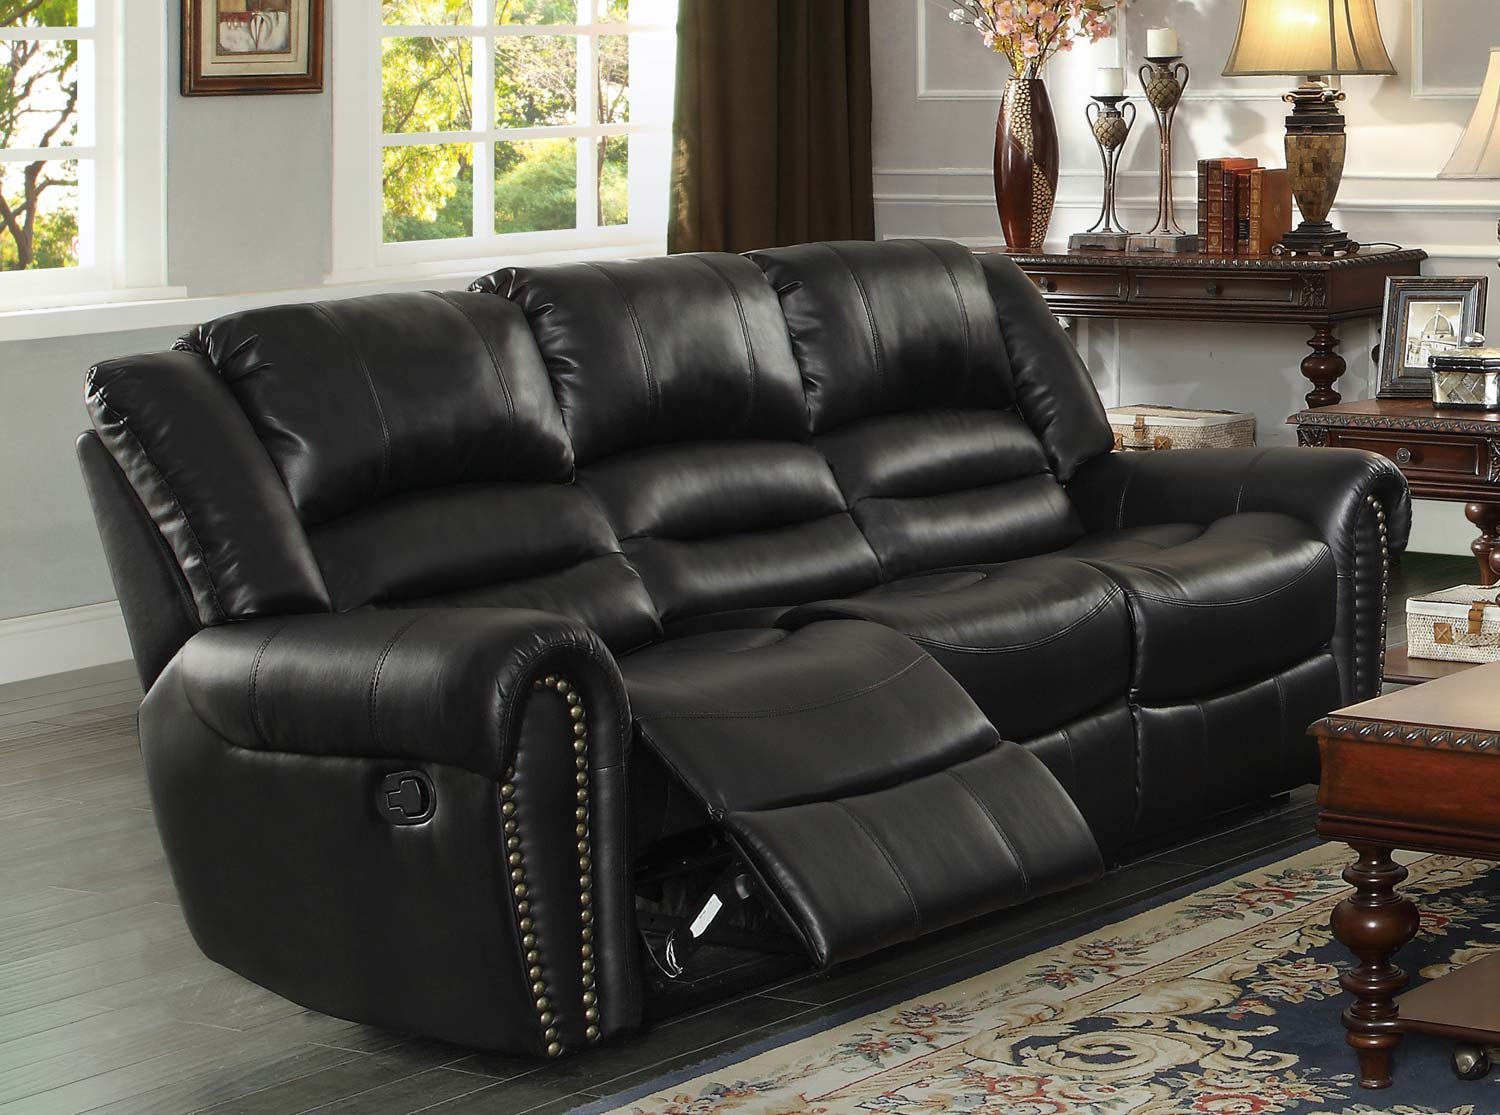 Center Hill Double Reclining Nailhead Sofa In Black Bonded Leather